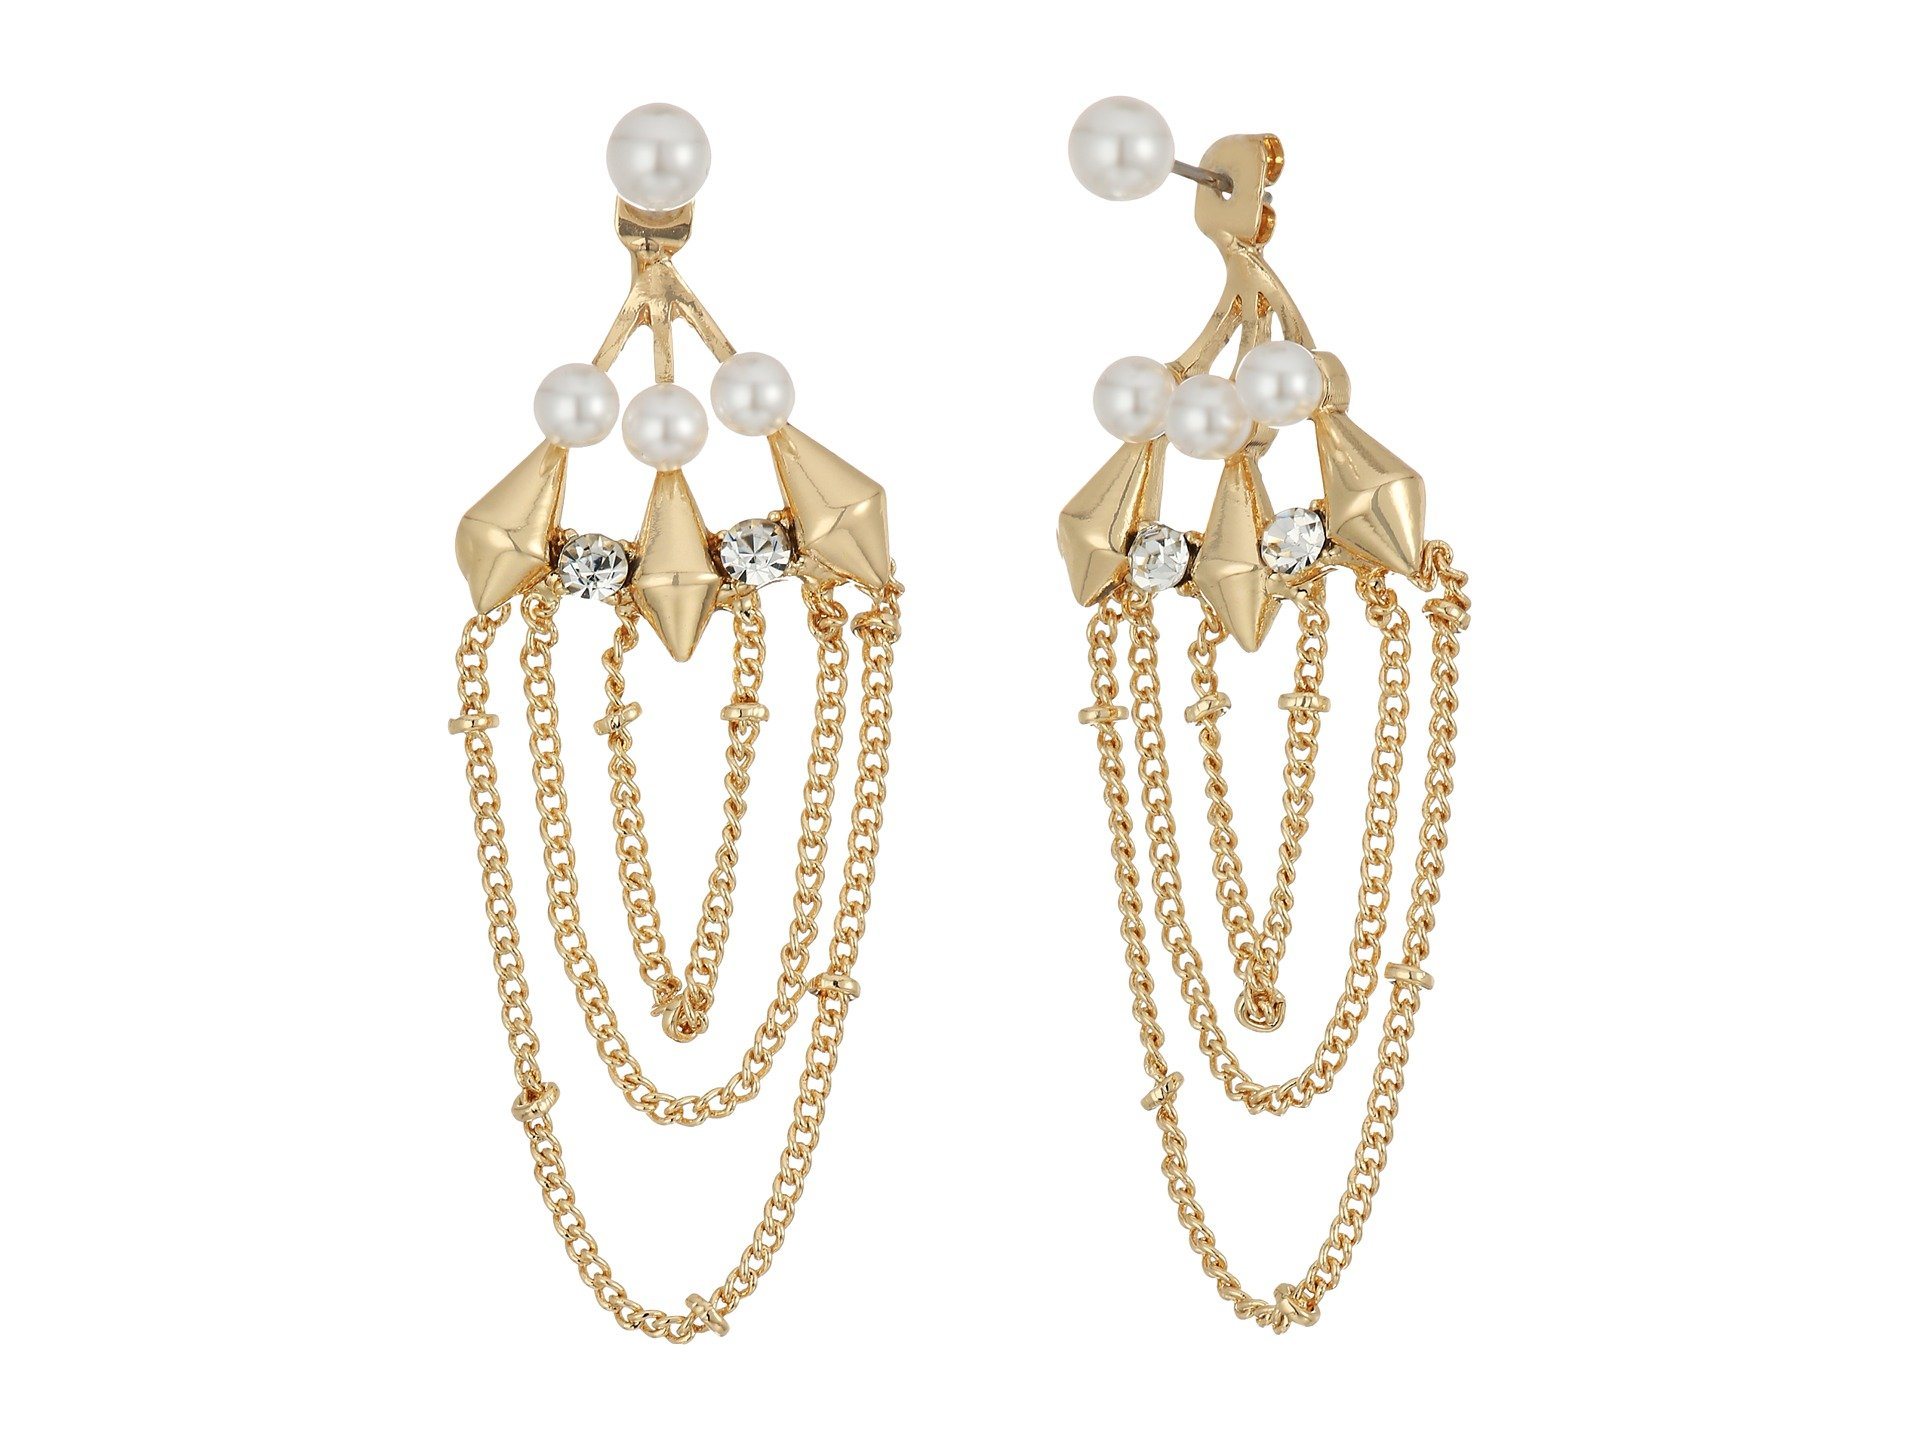 Pendientes para Mujer Steve Madden Pearl/Chain Front to Back Earrings  + Steve Madden en VeoyCompro.net